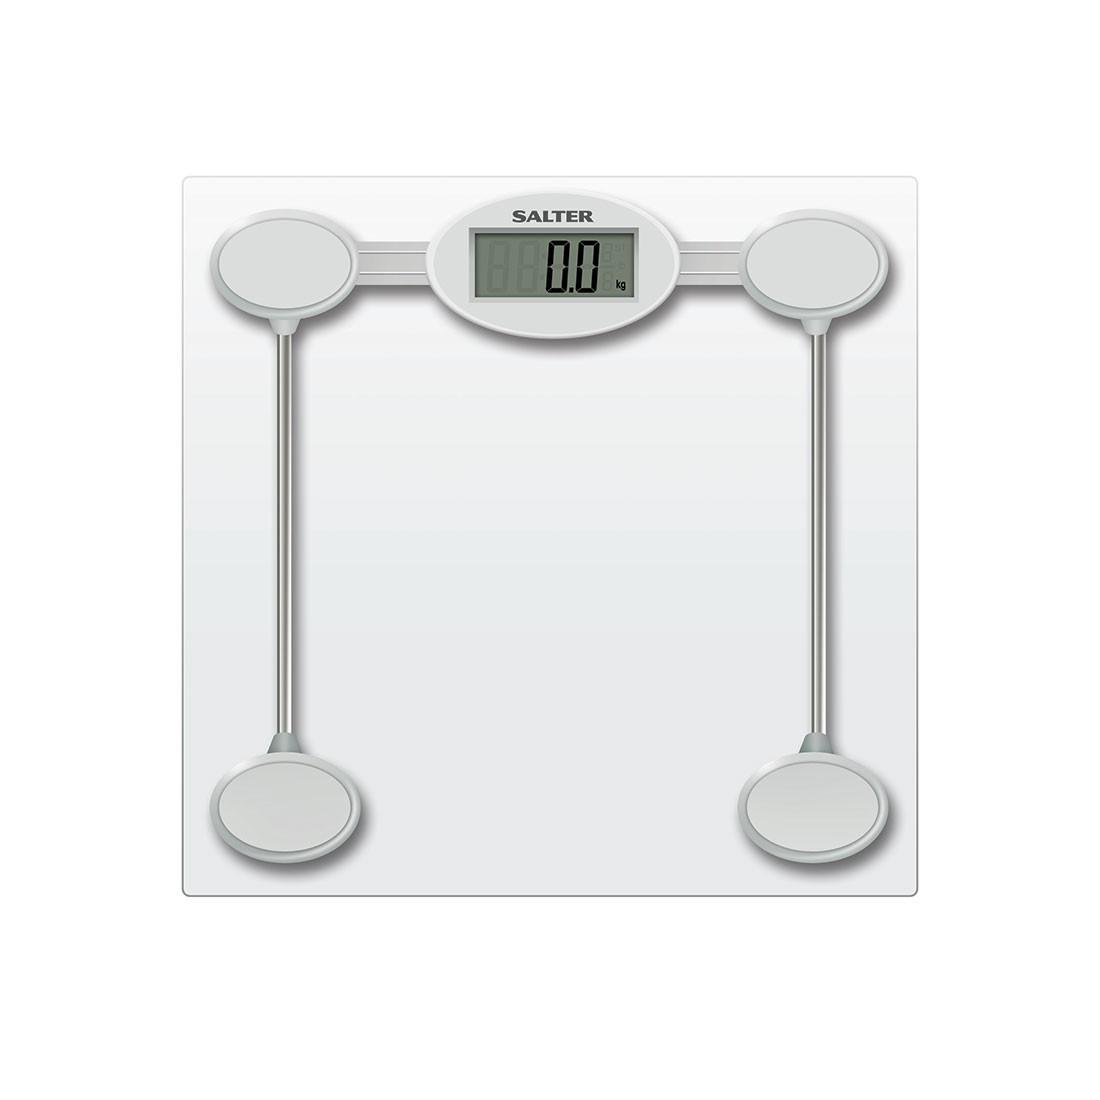 Salter Digital Bathroom Scales Electronic Body Weighing